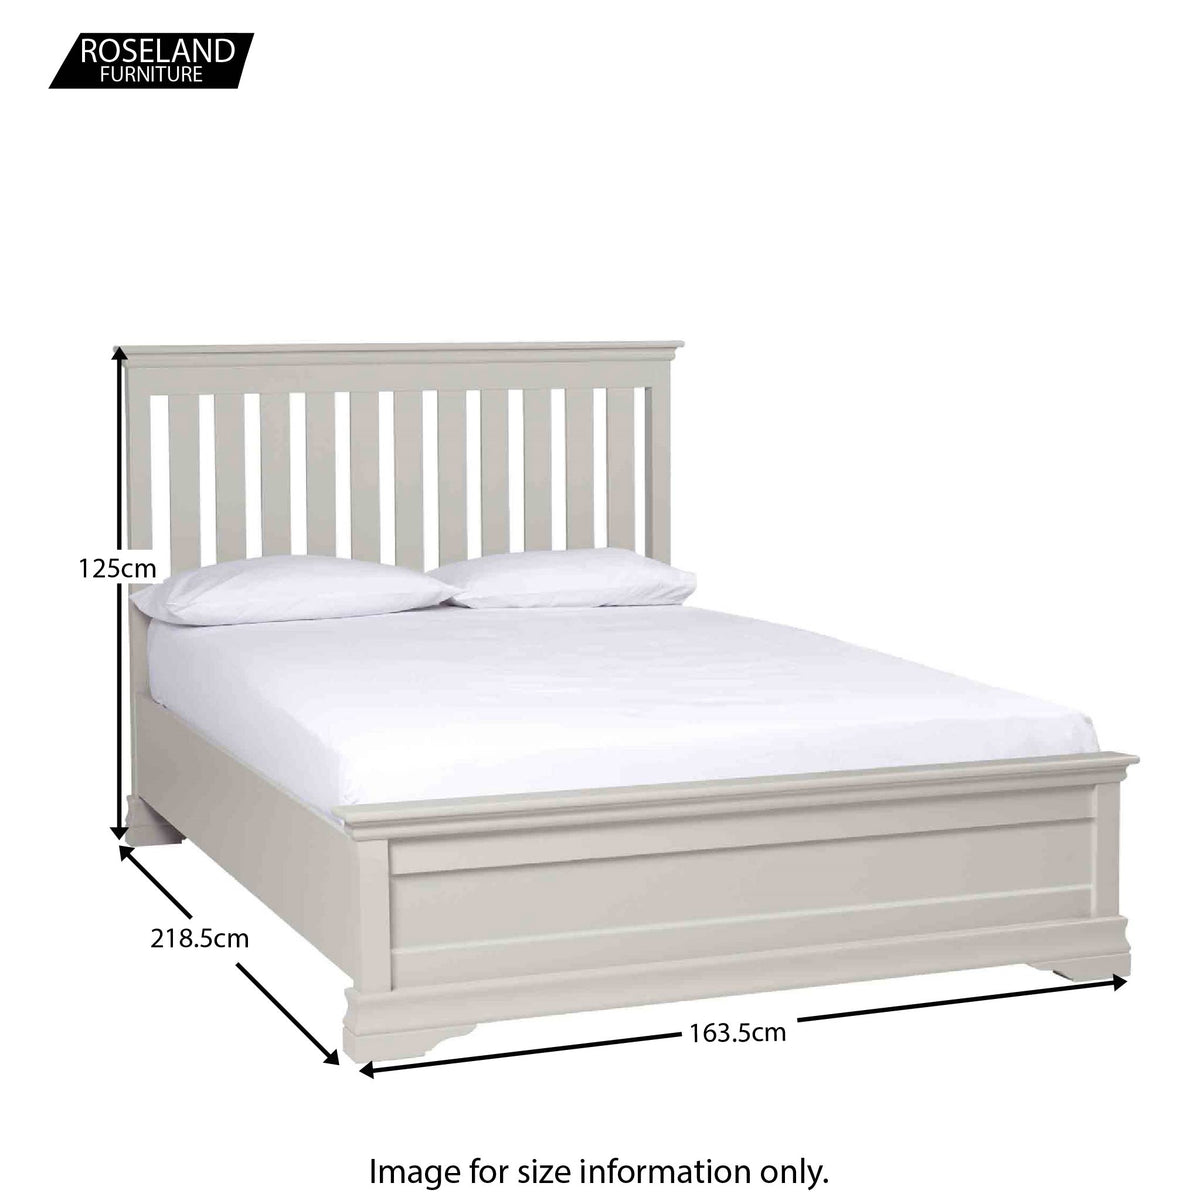 Dimensions for Melrose Cotton White King Size Bed Frame